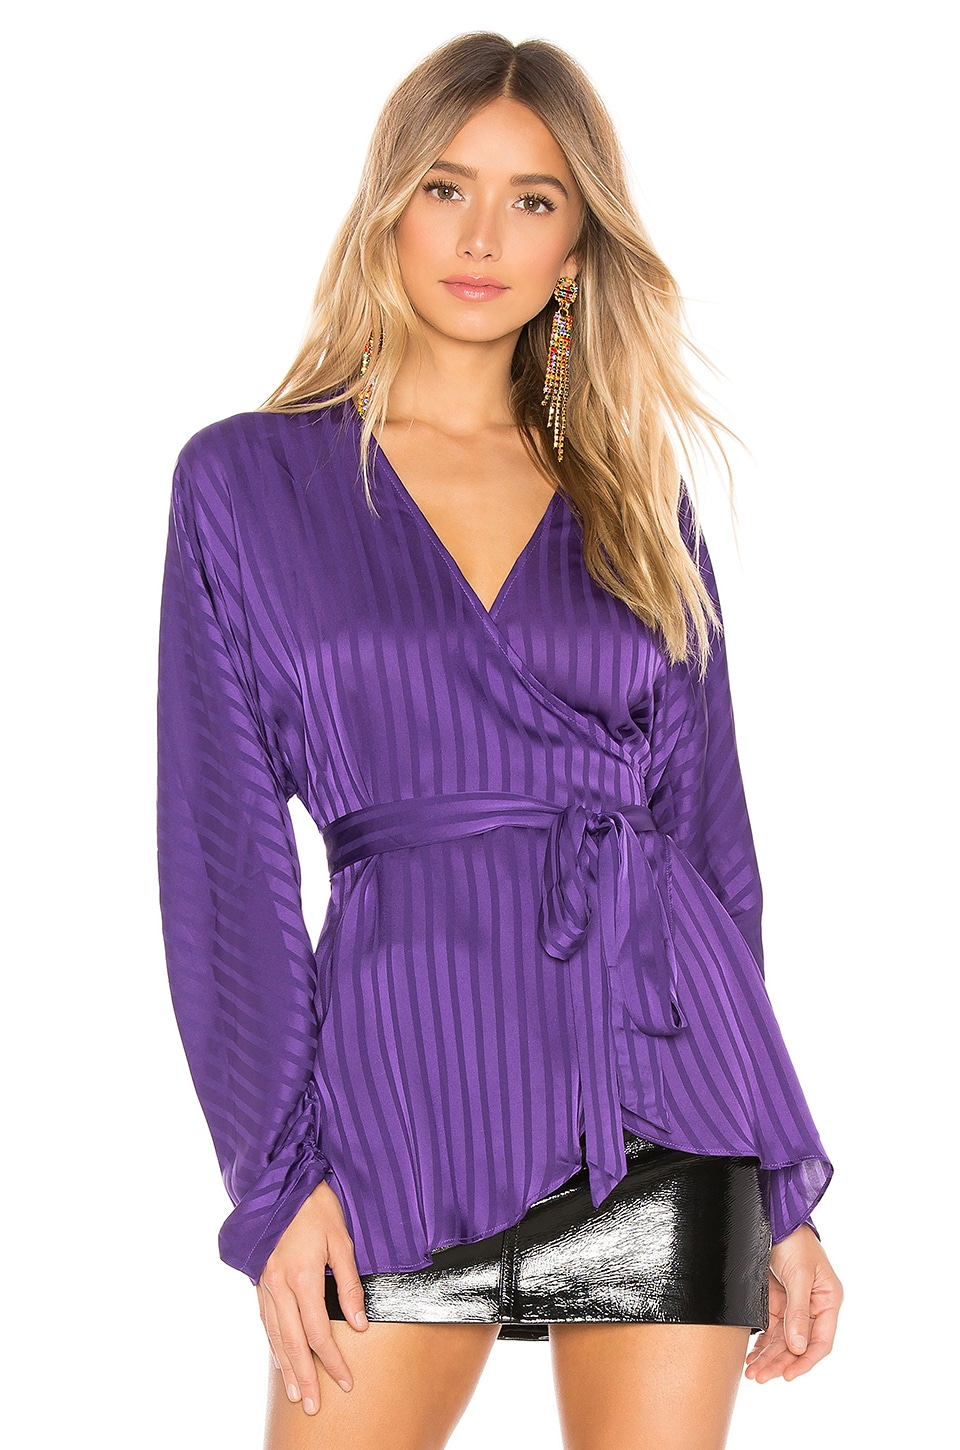 L'Academie The Kate Blouse in Violet Indigo